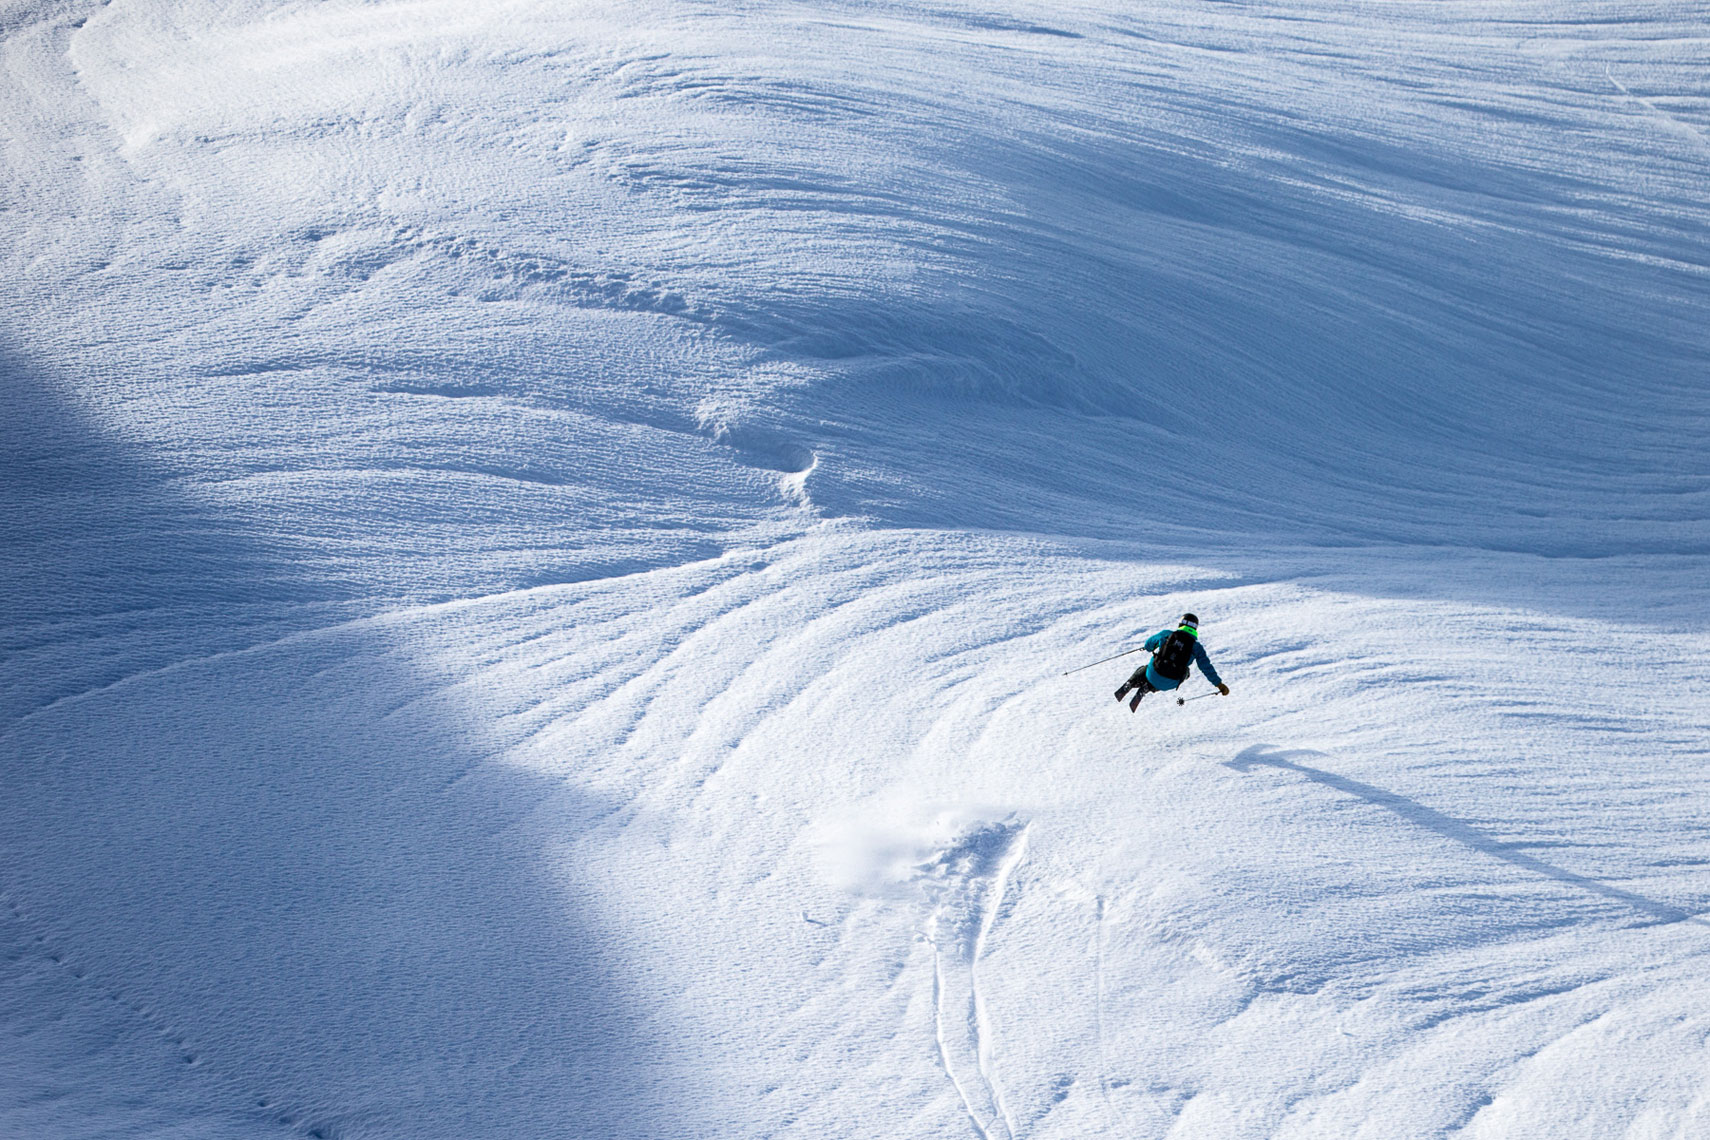 Marcus Caston skiing Whistler Photo: Adam Barker